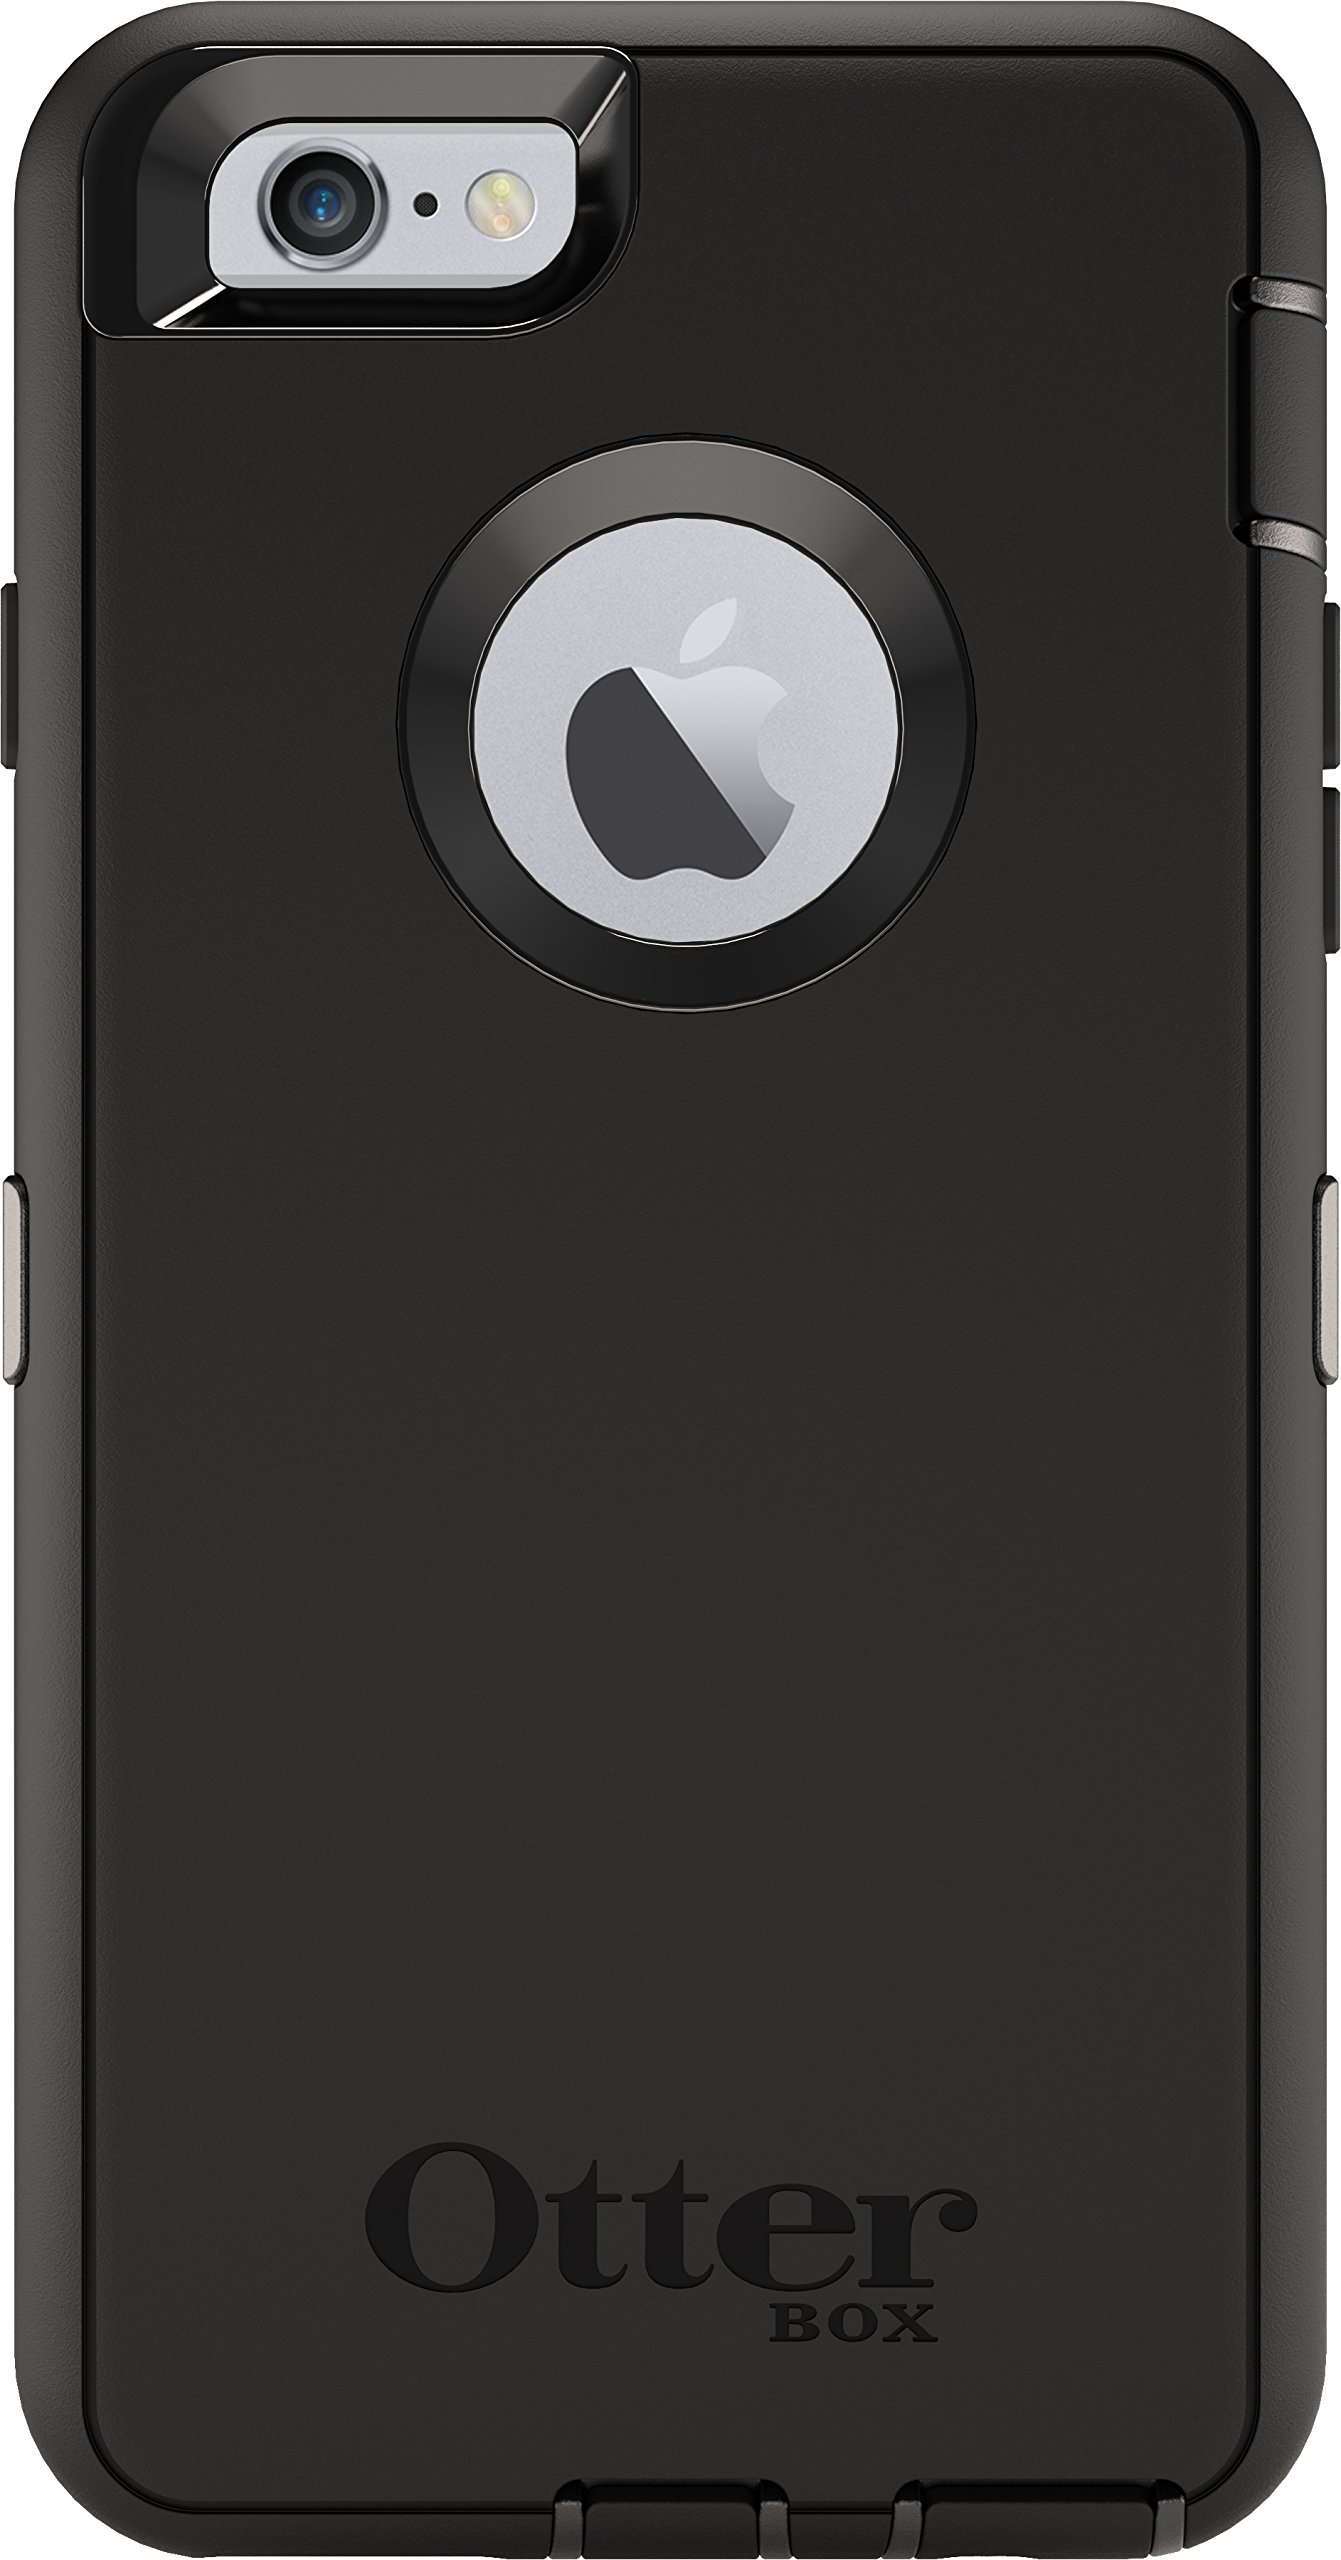 OtterBox DEFENDER iPhone 6/6s Case - Retail Packaging - BLACK by OtterBox